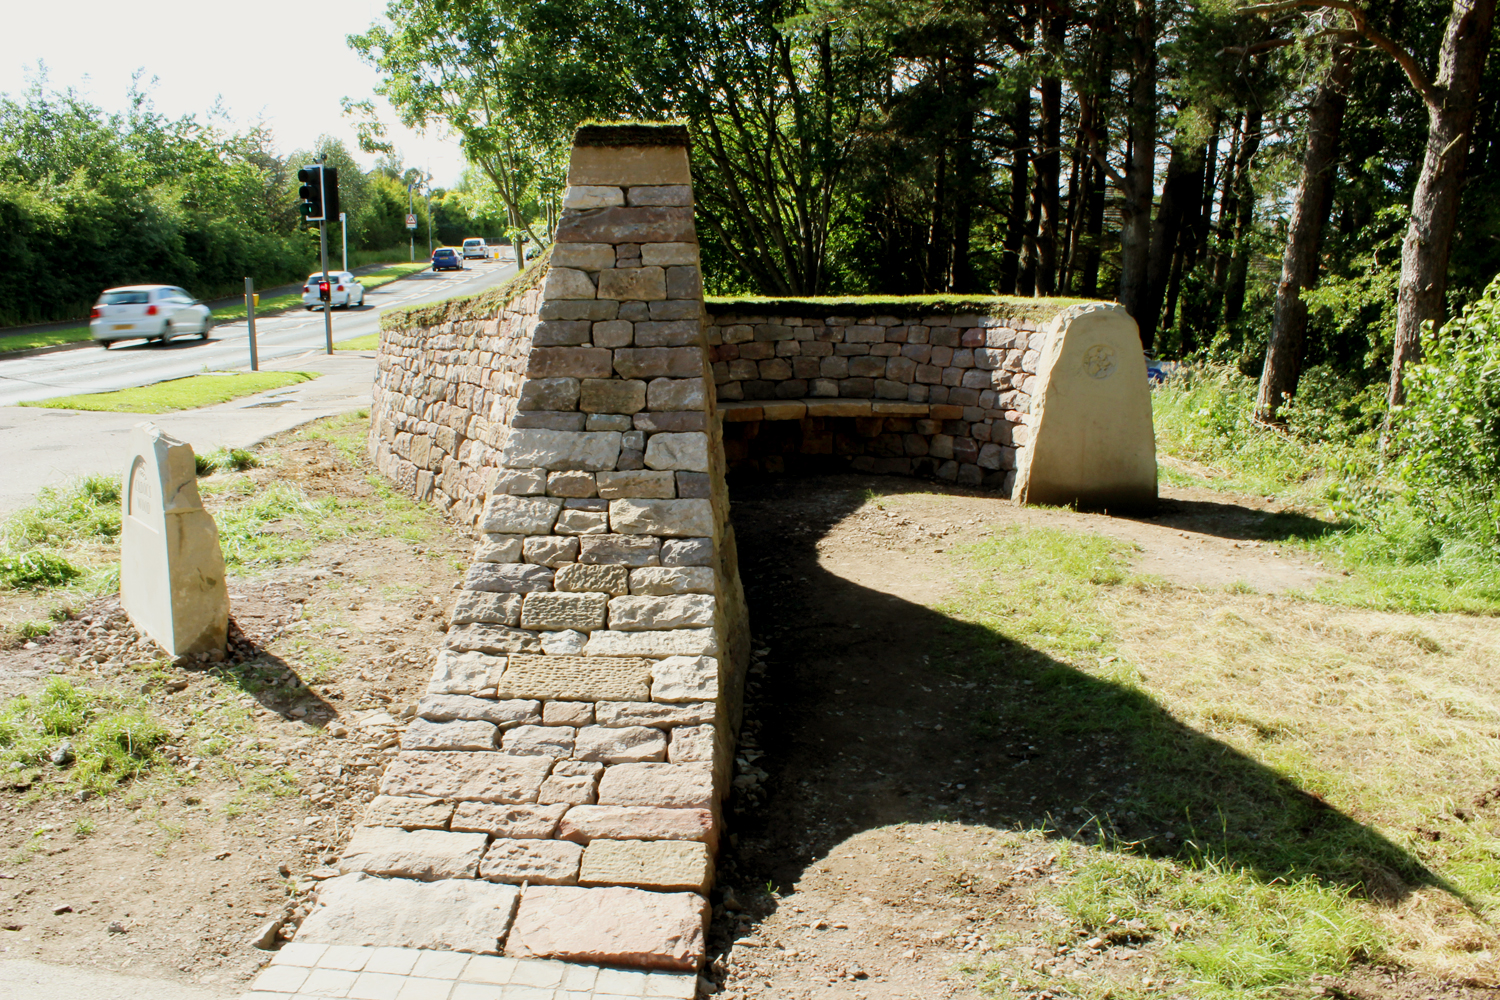 Dry stone entrance way